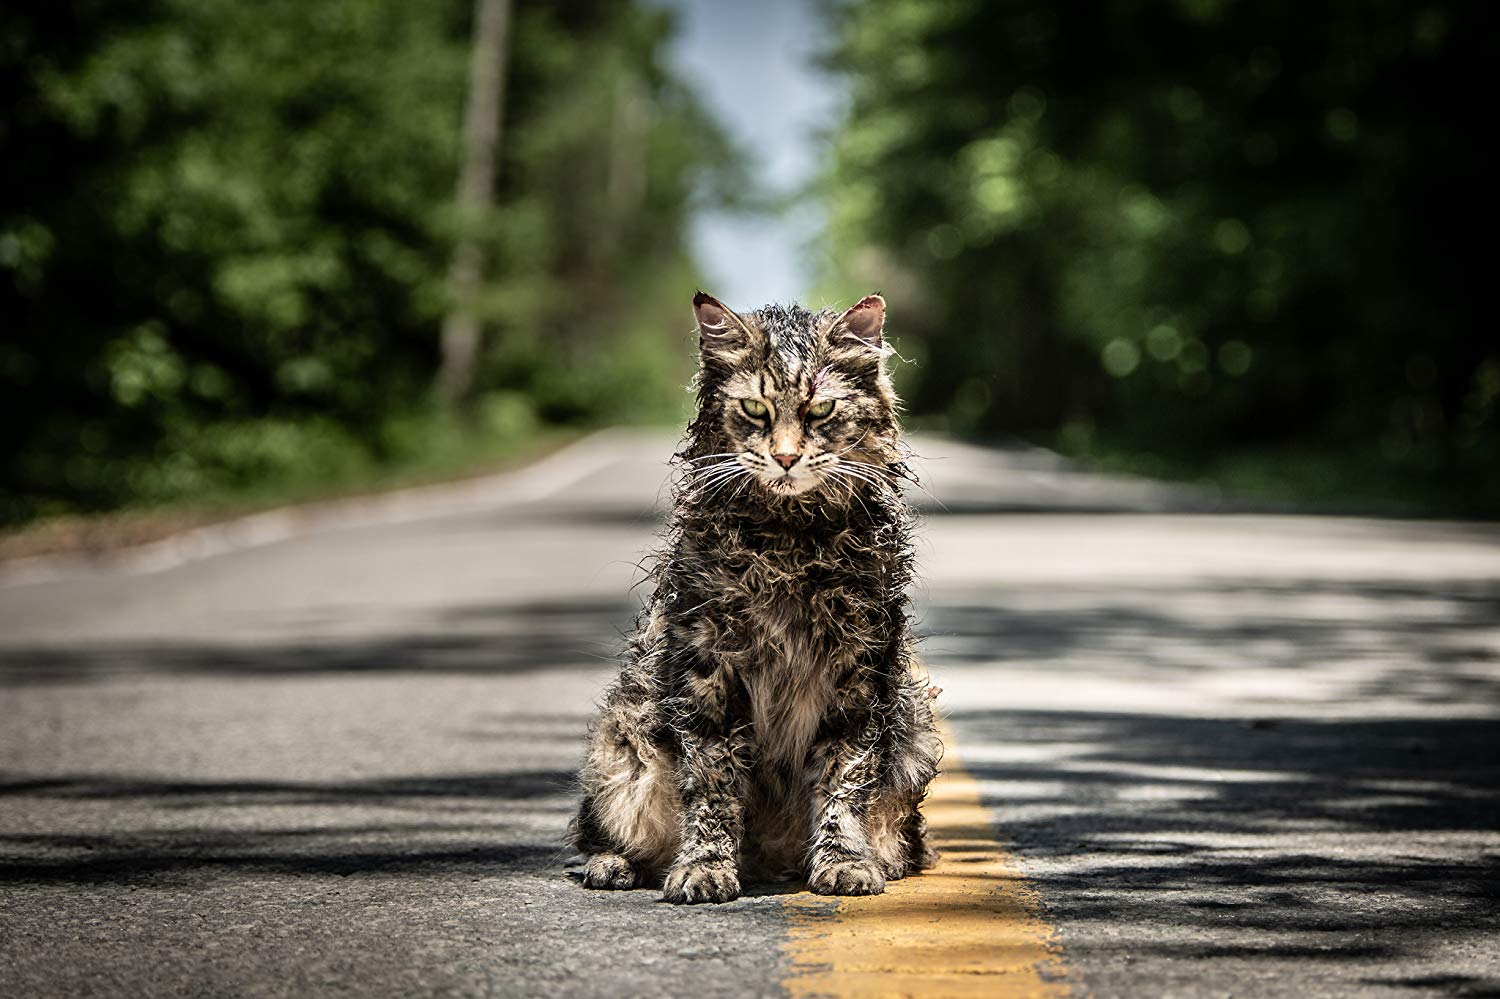 The evil cat from Pet Sematary